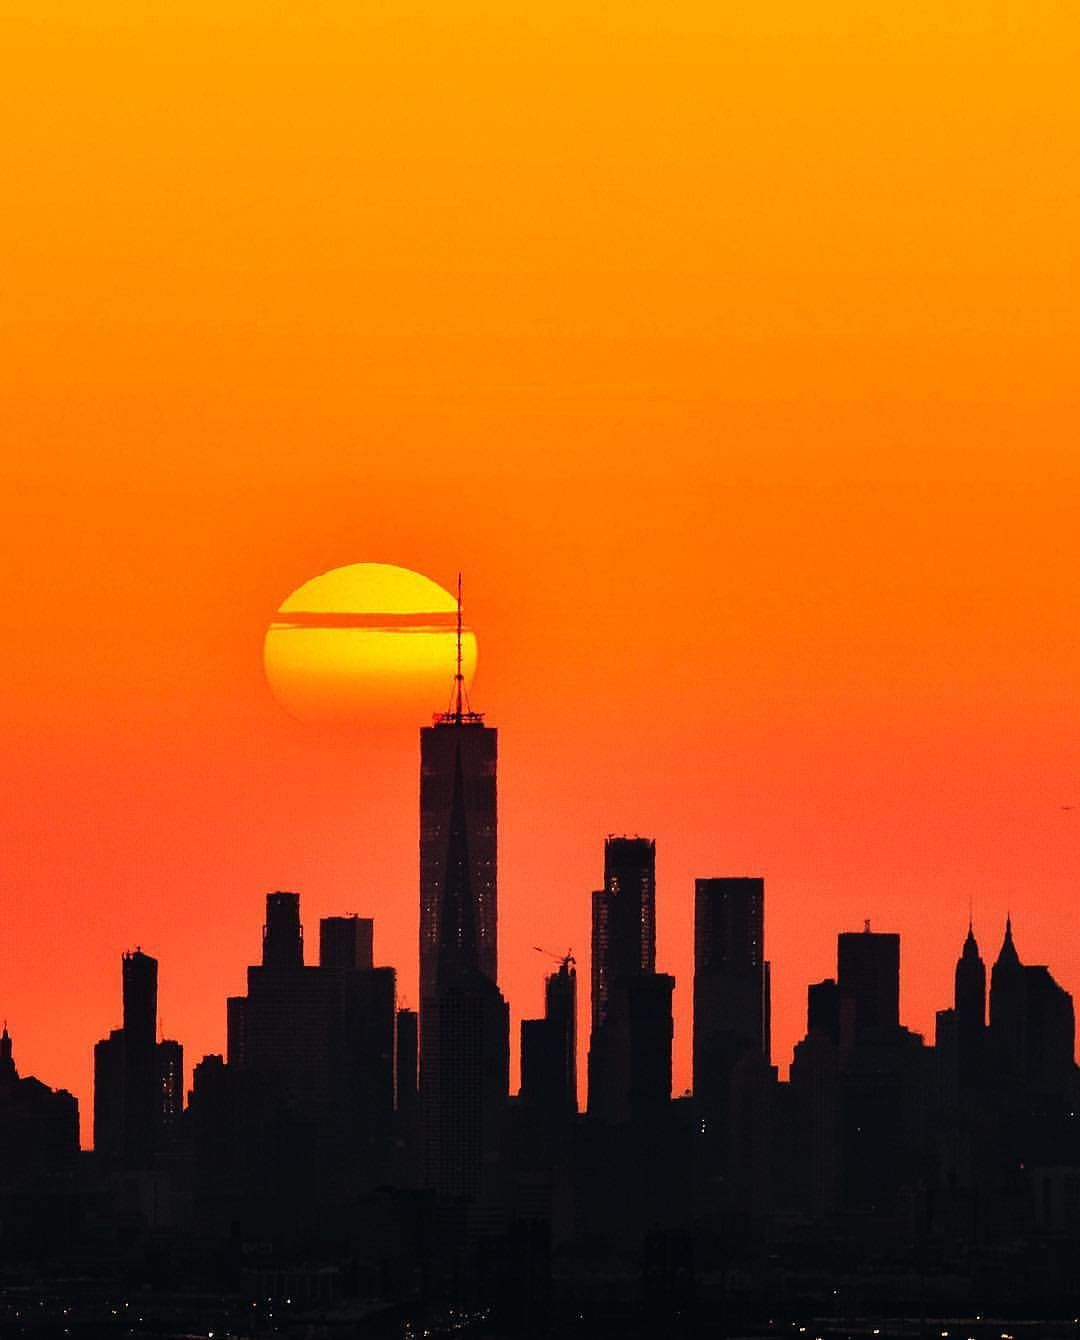 That S A Real Emoji Capture By Bill Nycfotophun Awesome New York Silhouettes Picturesof Sunset Landscape Photography Landscape Silhouette City Photography